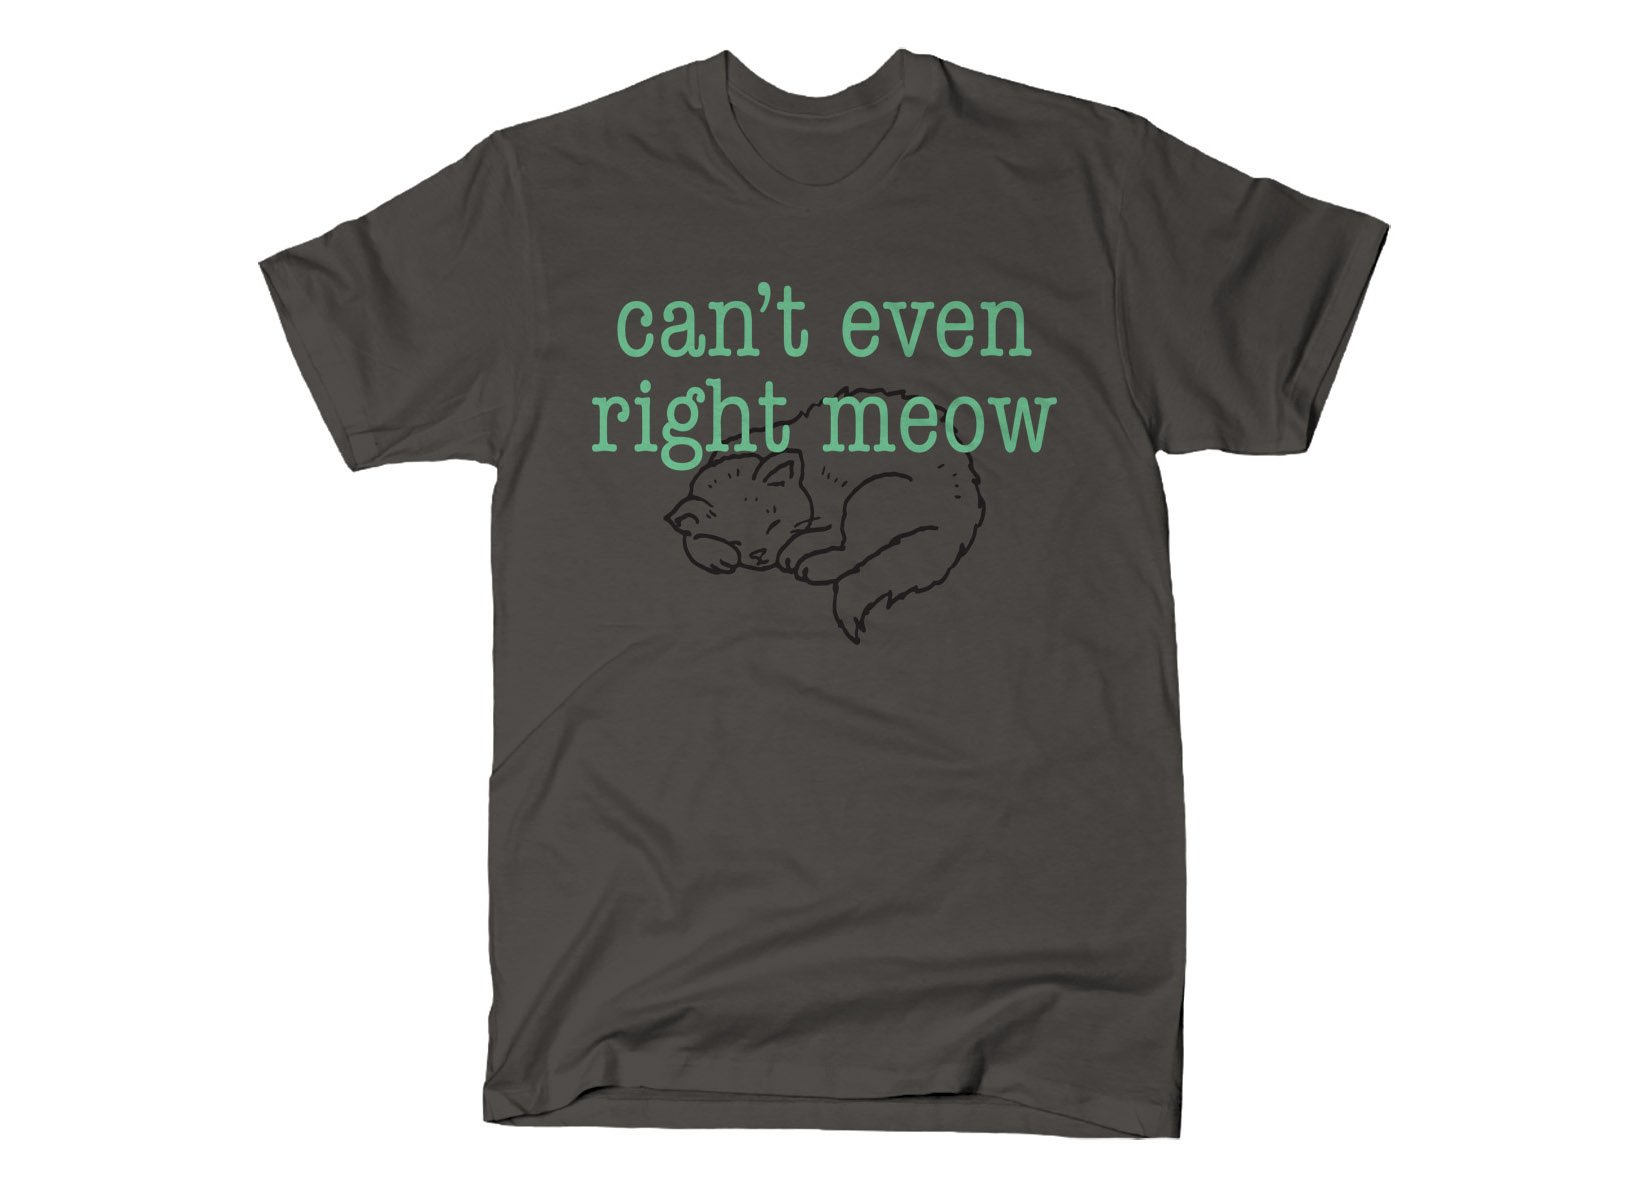 Can't Even Right Meow on Mens T-Shirt